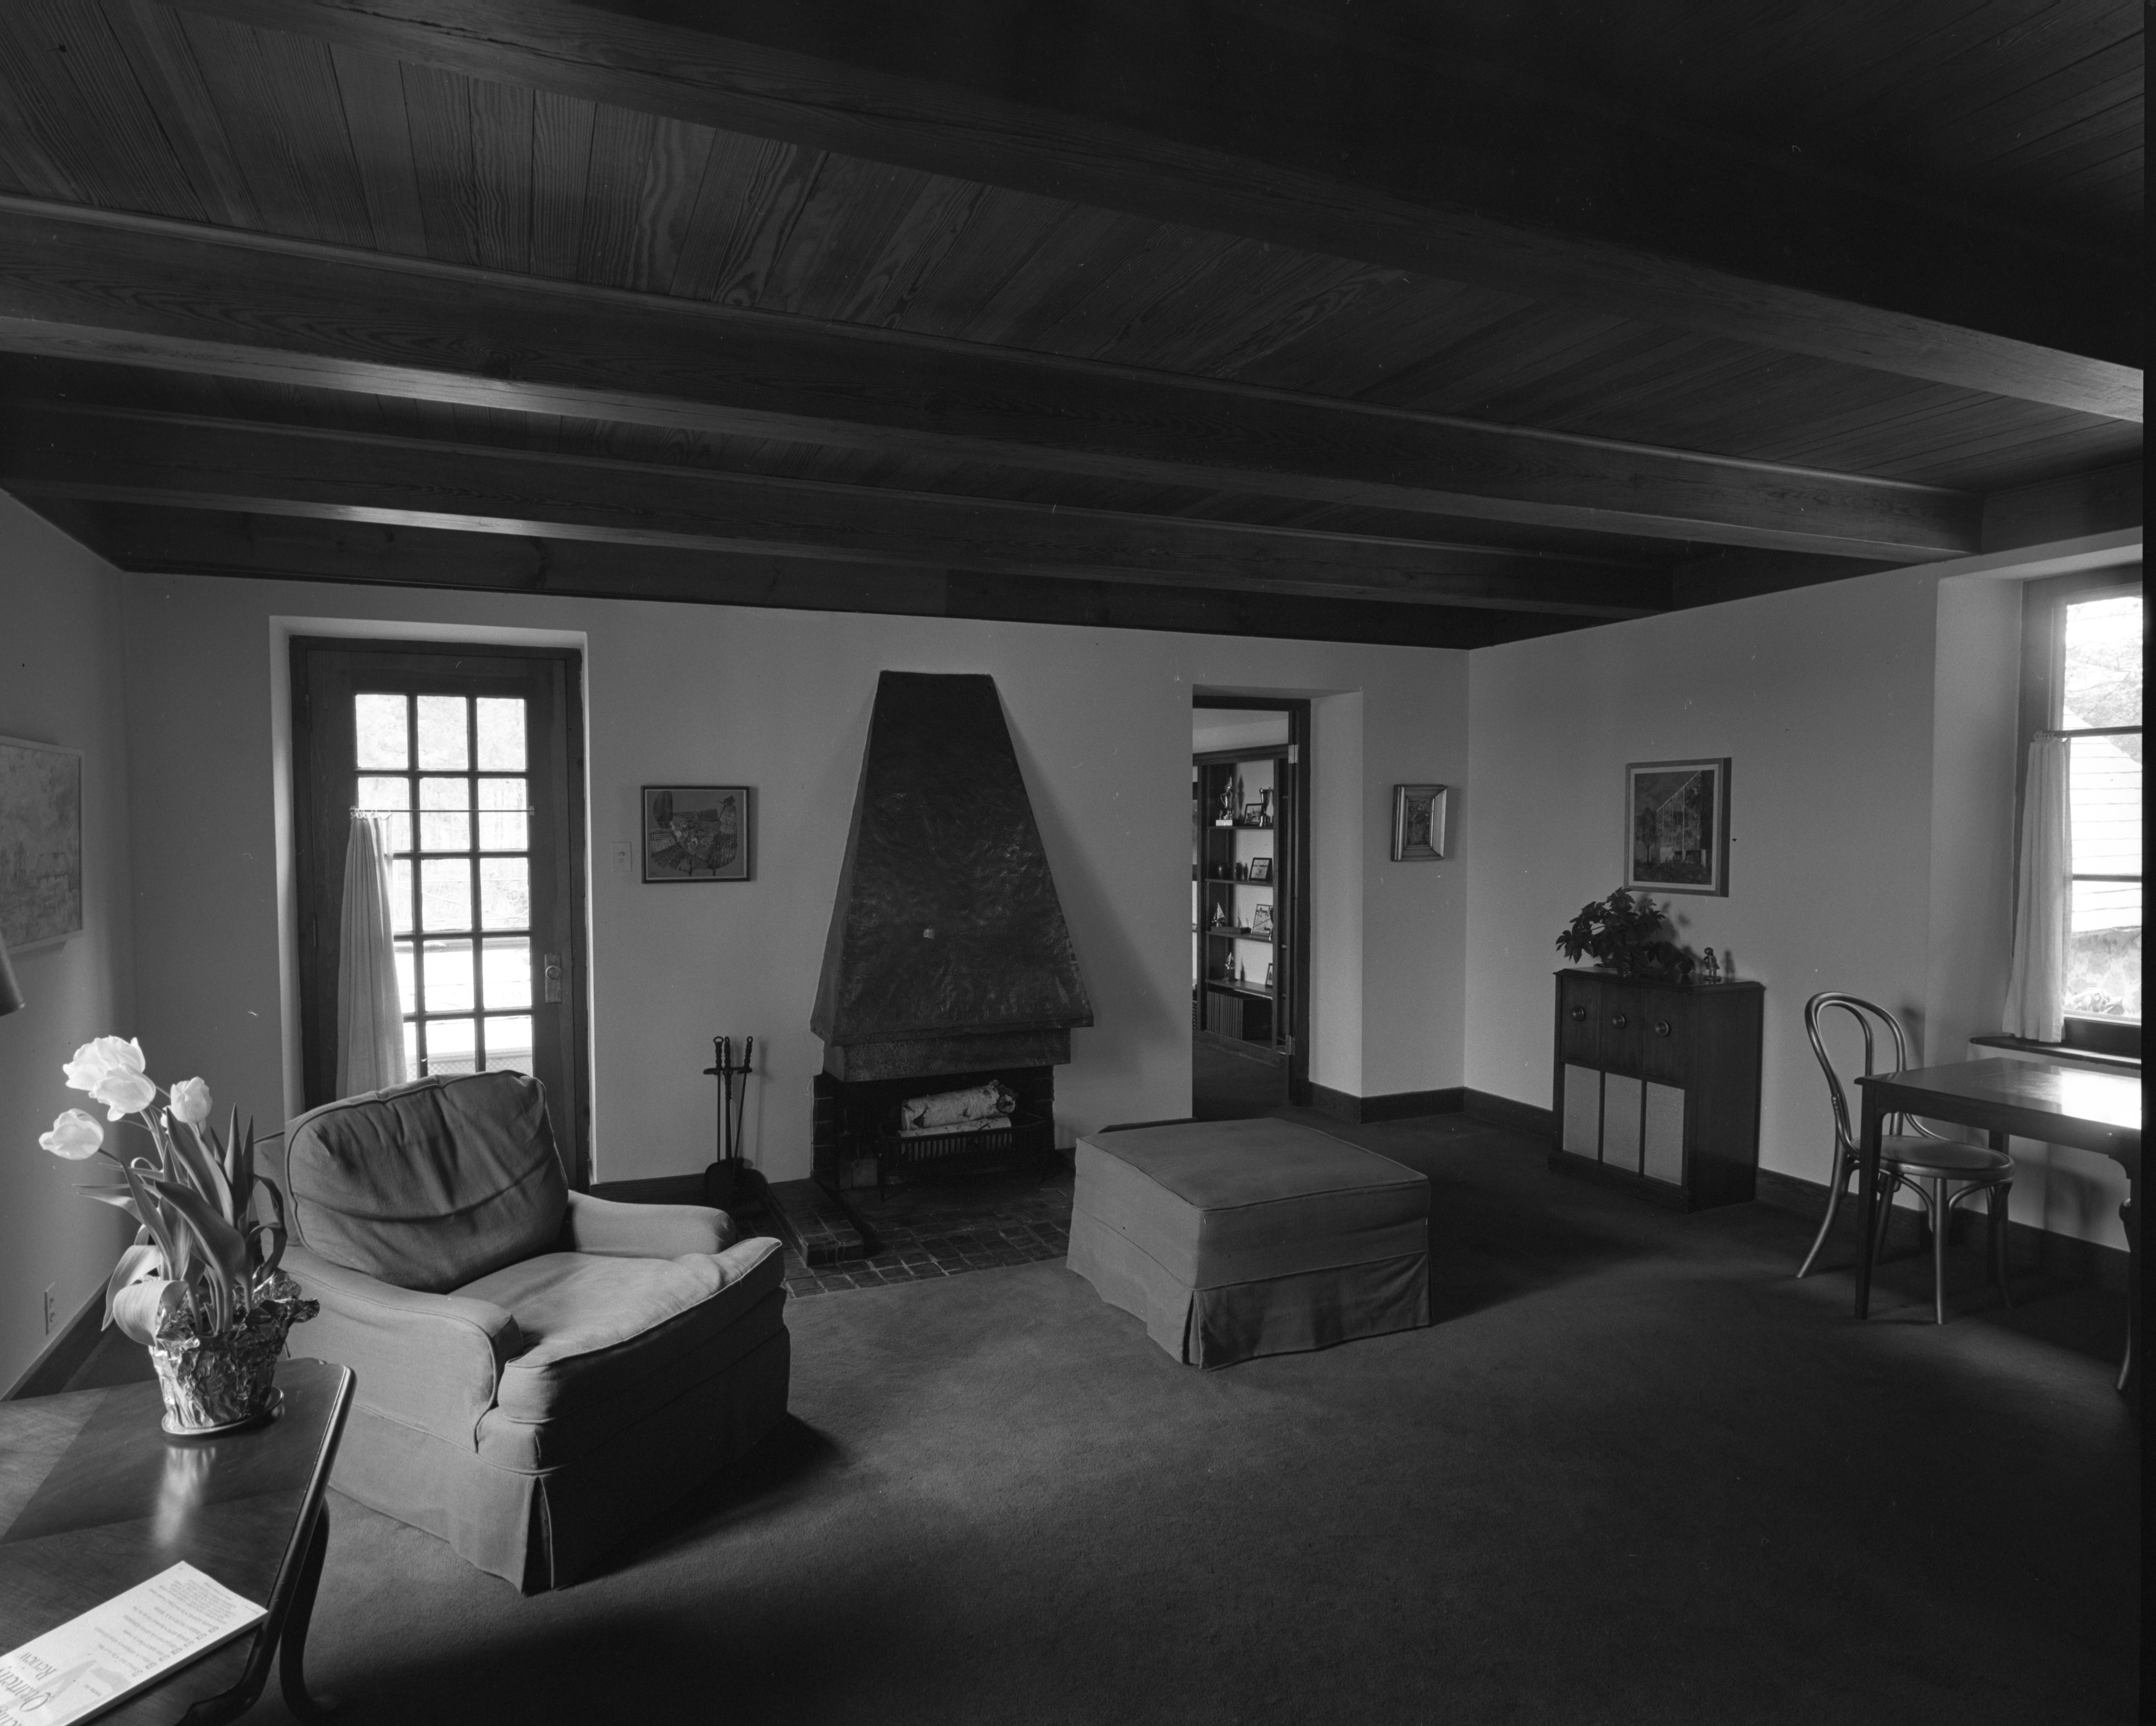 Natural Fireplace and Natural Lighting at Dr. William C. Grabb Residence, April 1967 image